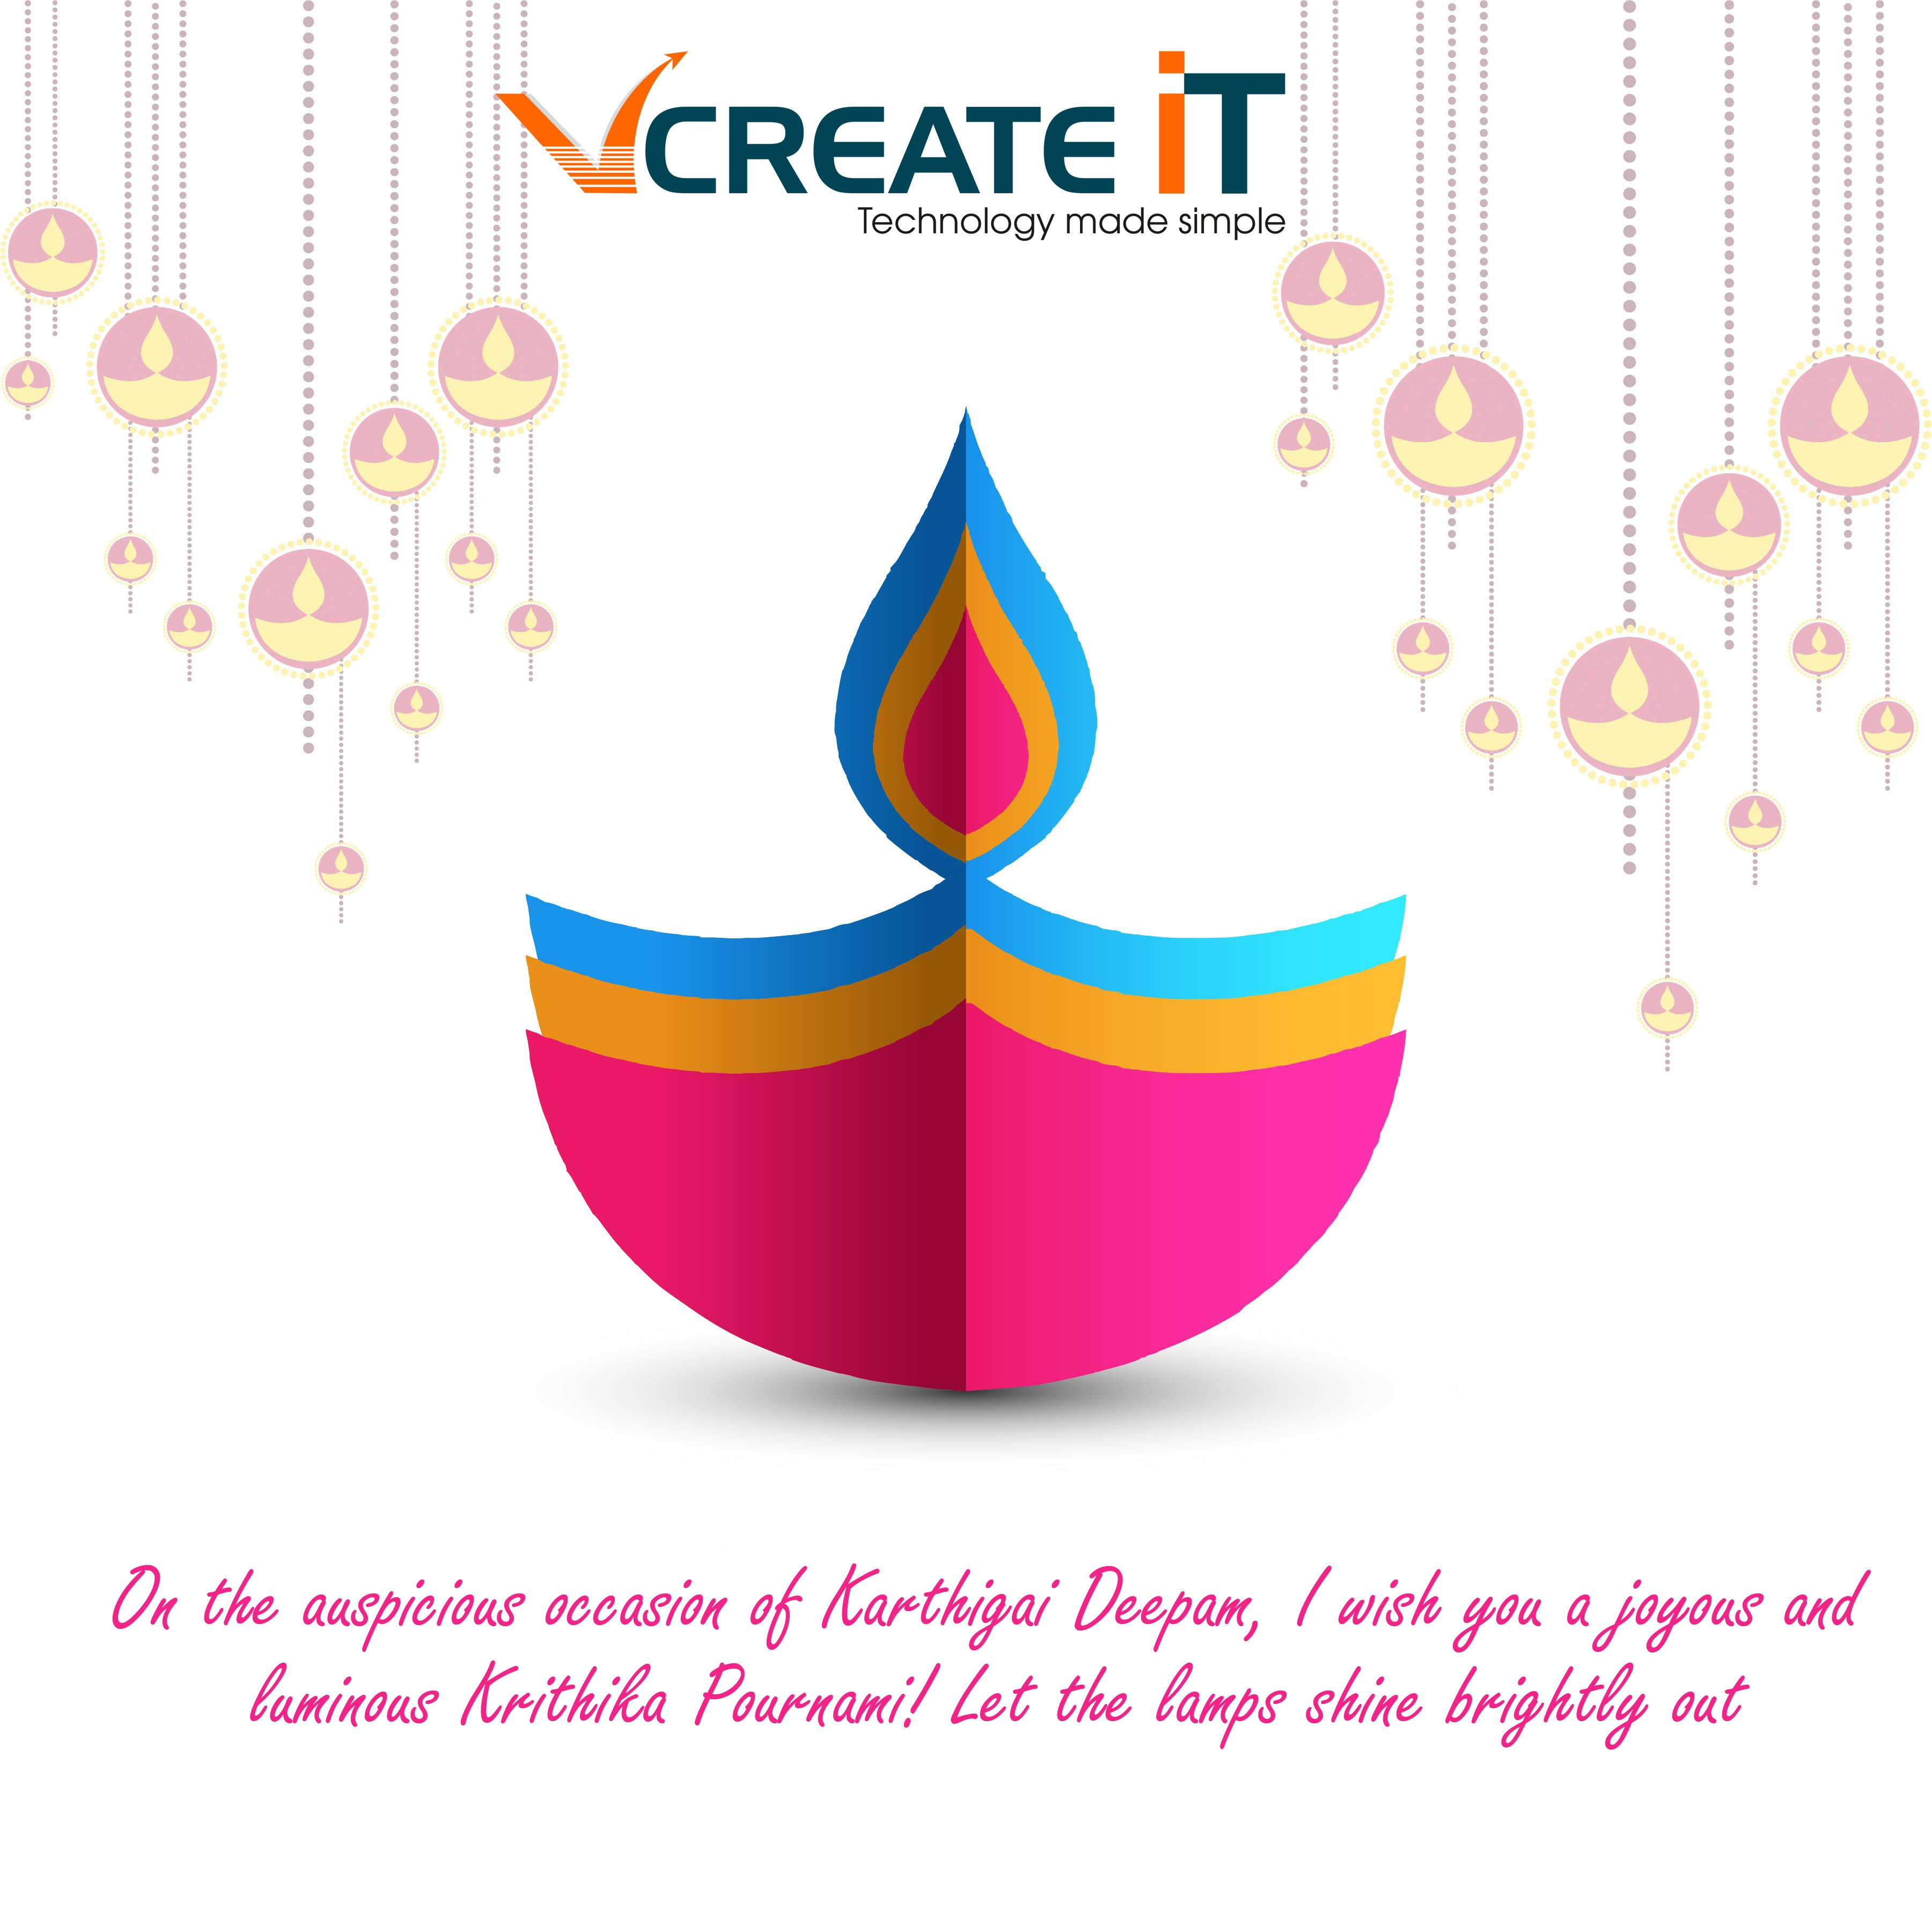 Vcreate It Wishes You Happy A Happy Karthigai Deepam Karthigaideepam Make It Simple Customer Service Quotes Are You Happy